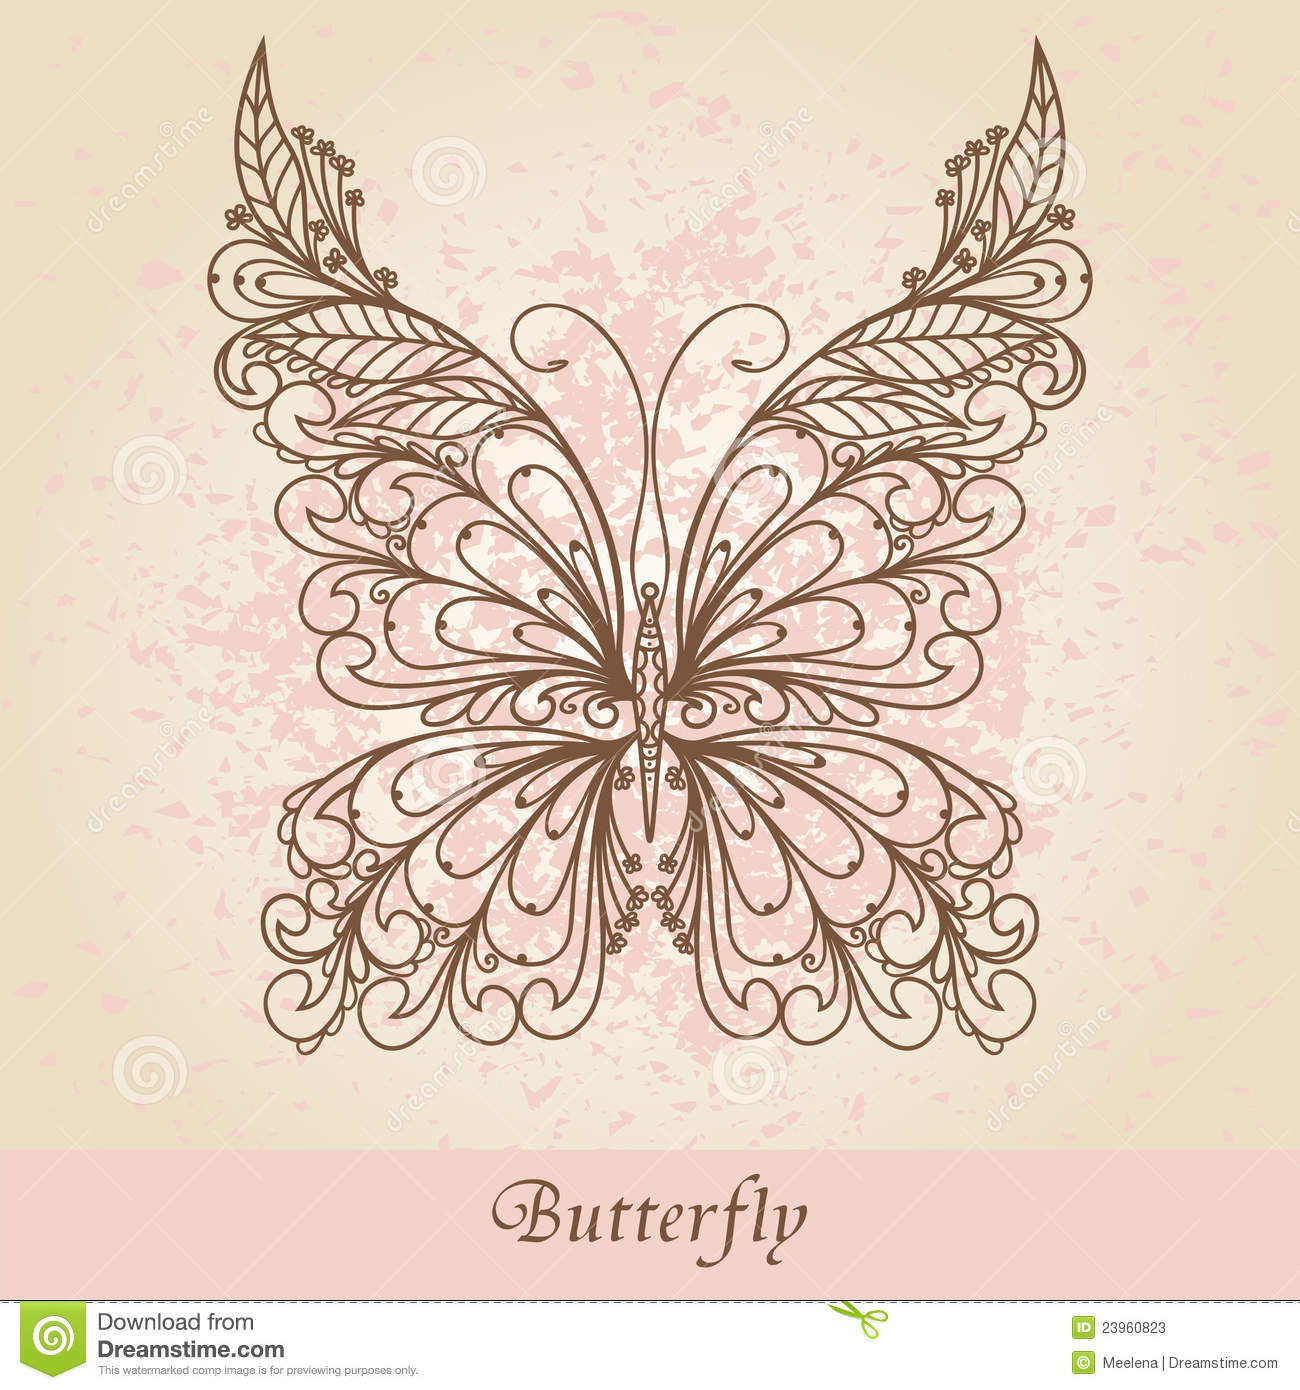 Hand drawn ornate butterfly stock photos image 23960823